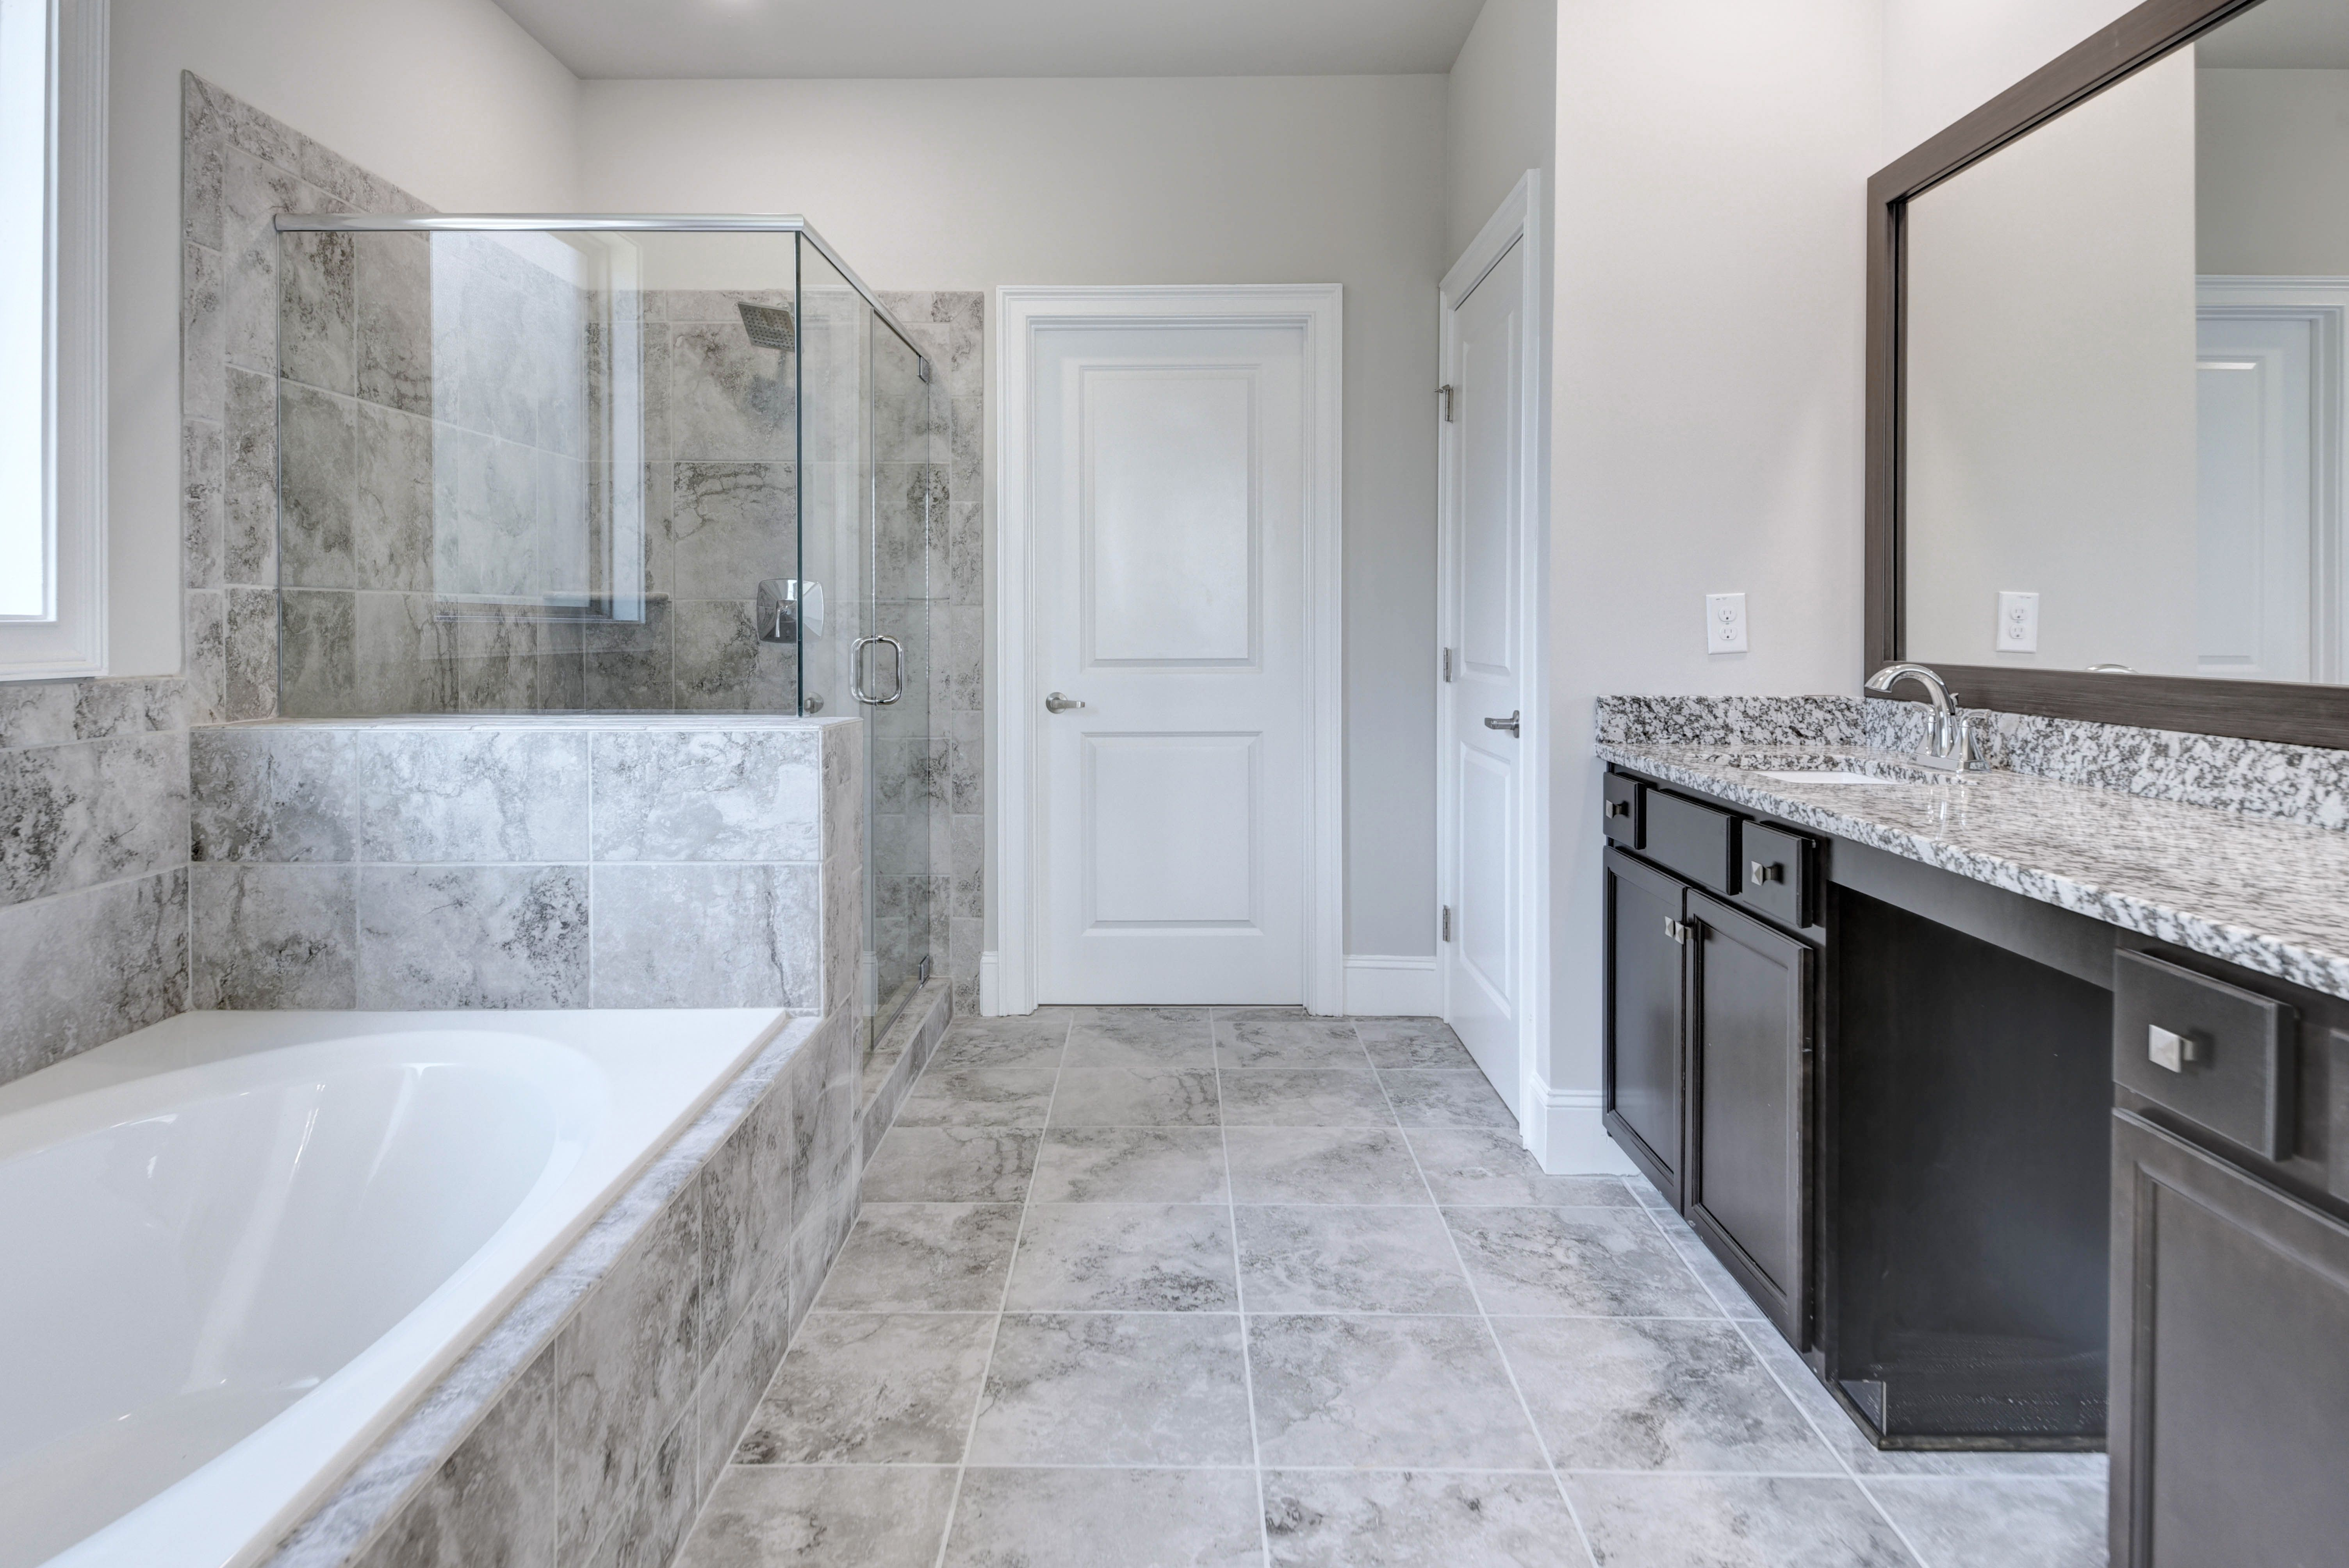 Bathroom featured in The Sophia By Almont Homes in Atlanta, GA